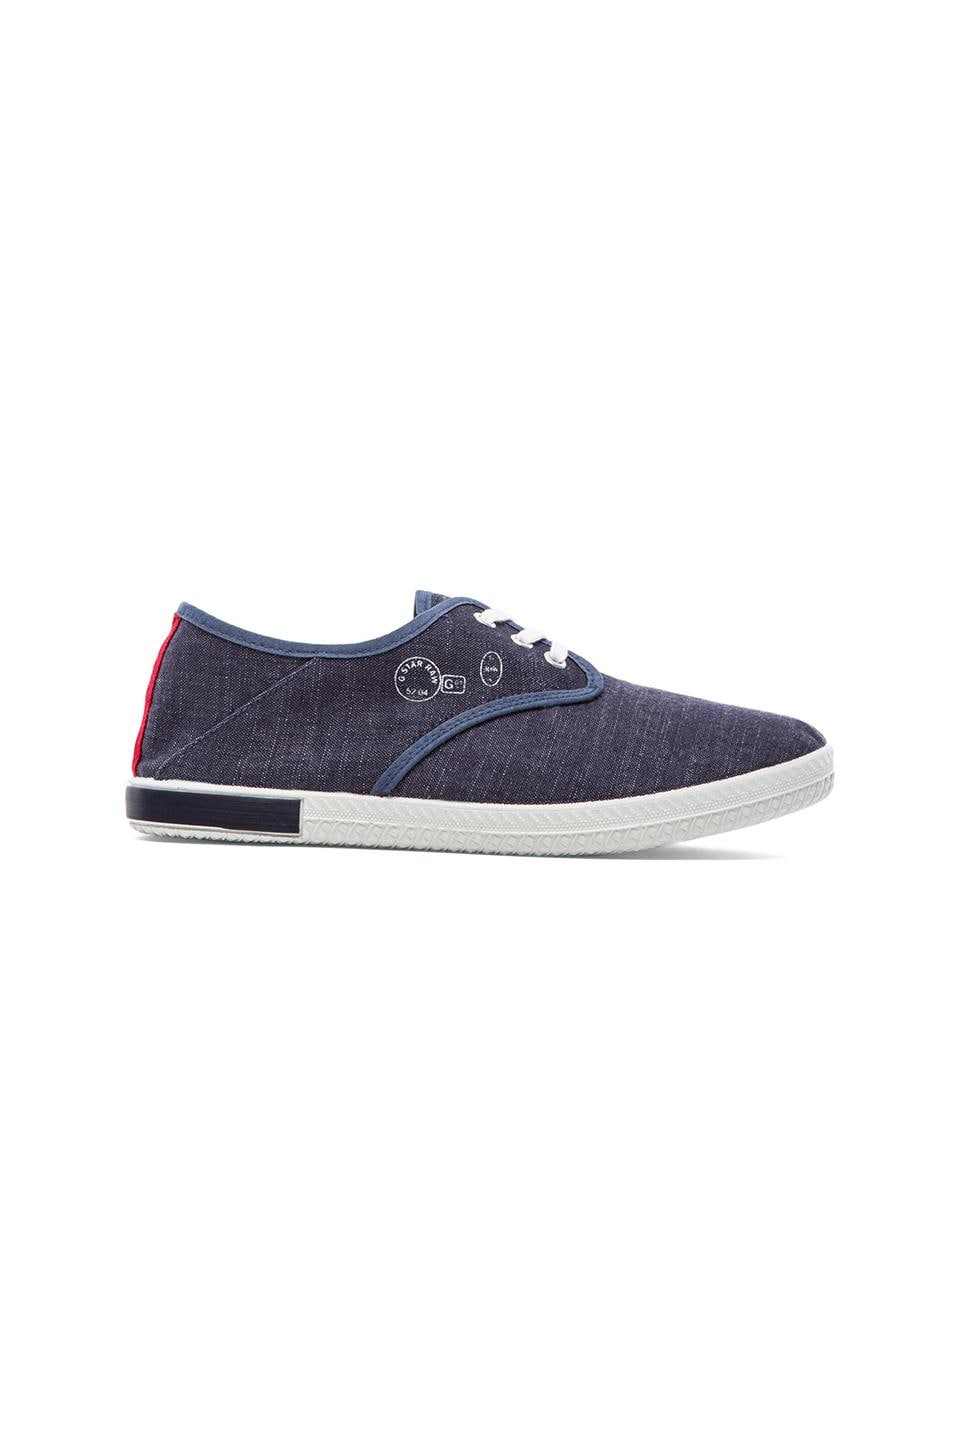 G-Star Cove Sneaker in Heavy Chambrey